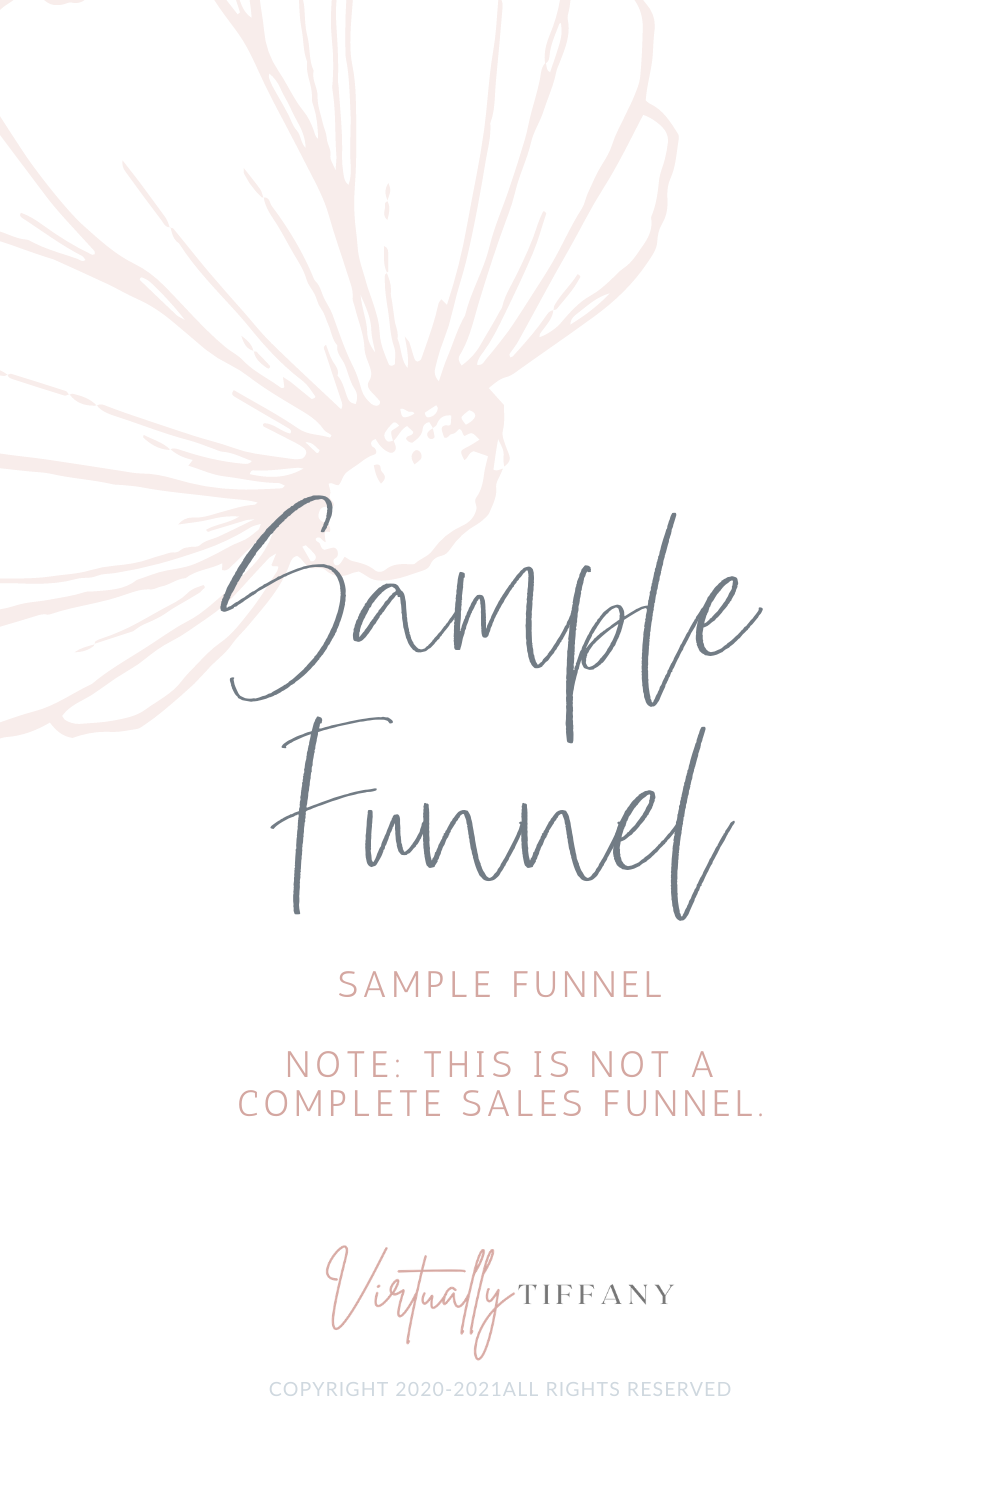 Sample Funnel Link image